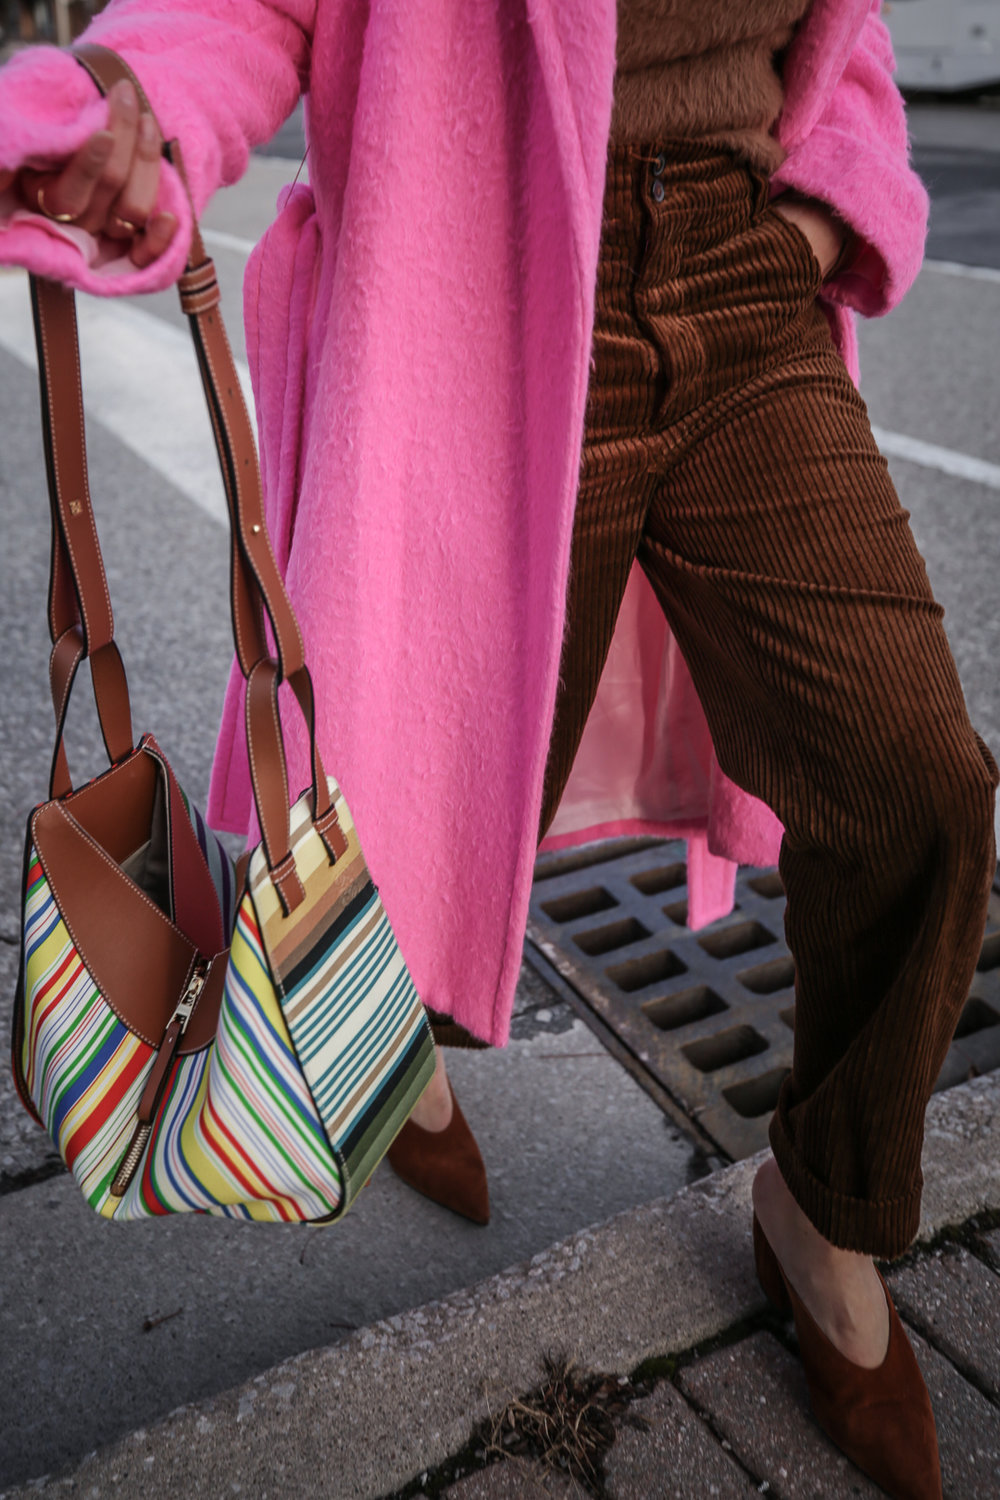 Nathalie Martin wearing Helmut Lang pink belt tie wool coat, brown corduroy pants, Zara brown textured sweater, Prada brown suede mules, Loewe striped Hammock bag, Bonlook Class sunglasses, street style, woahstyle.com_5155.jpg